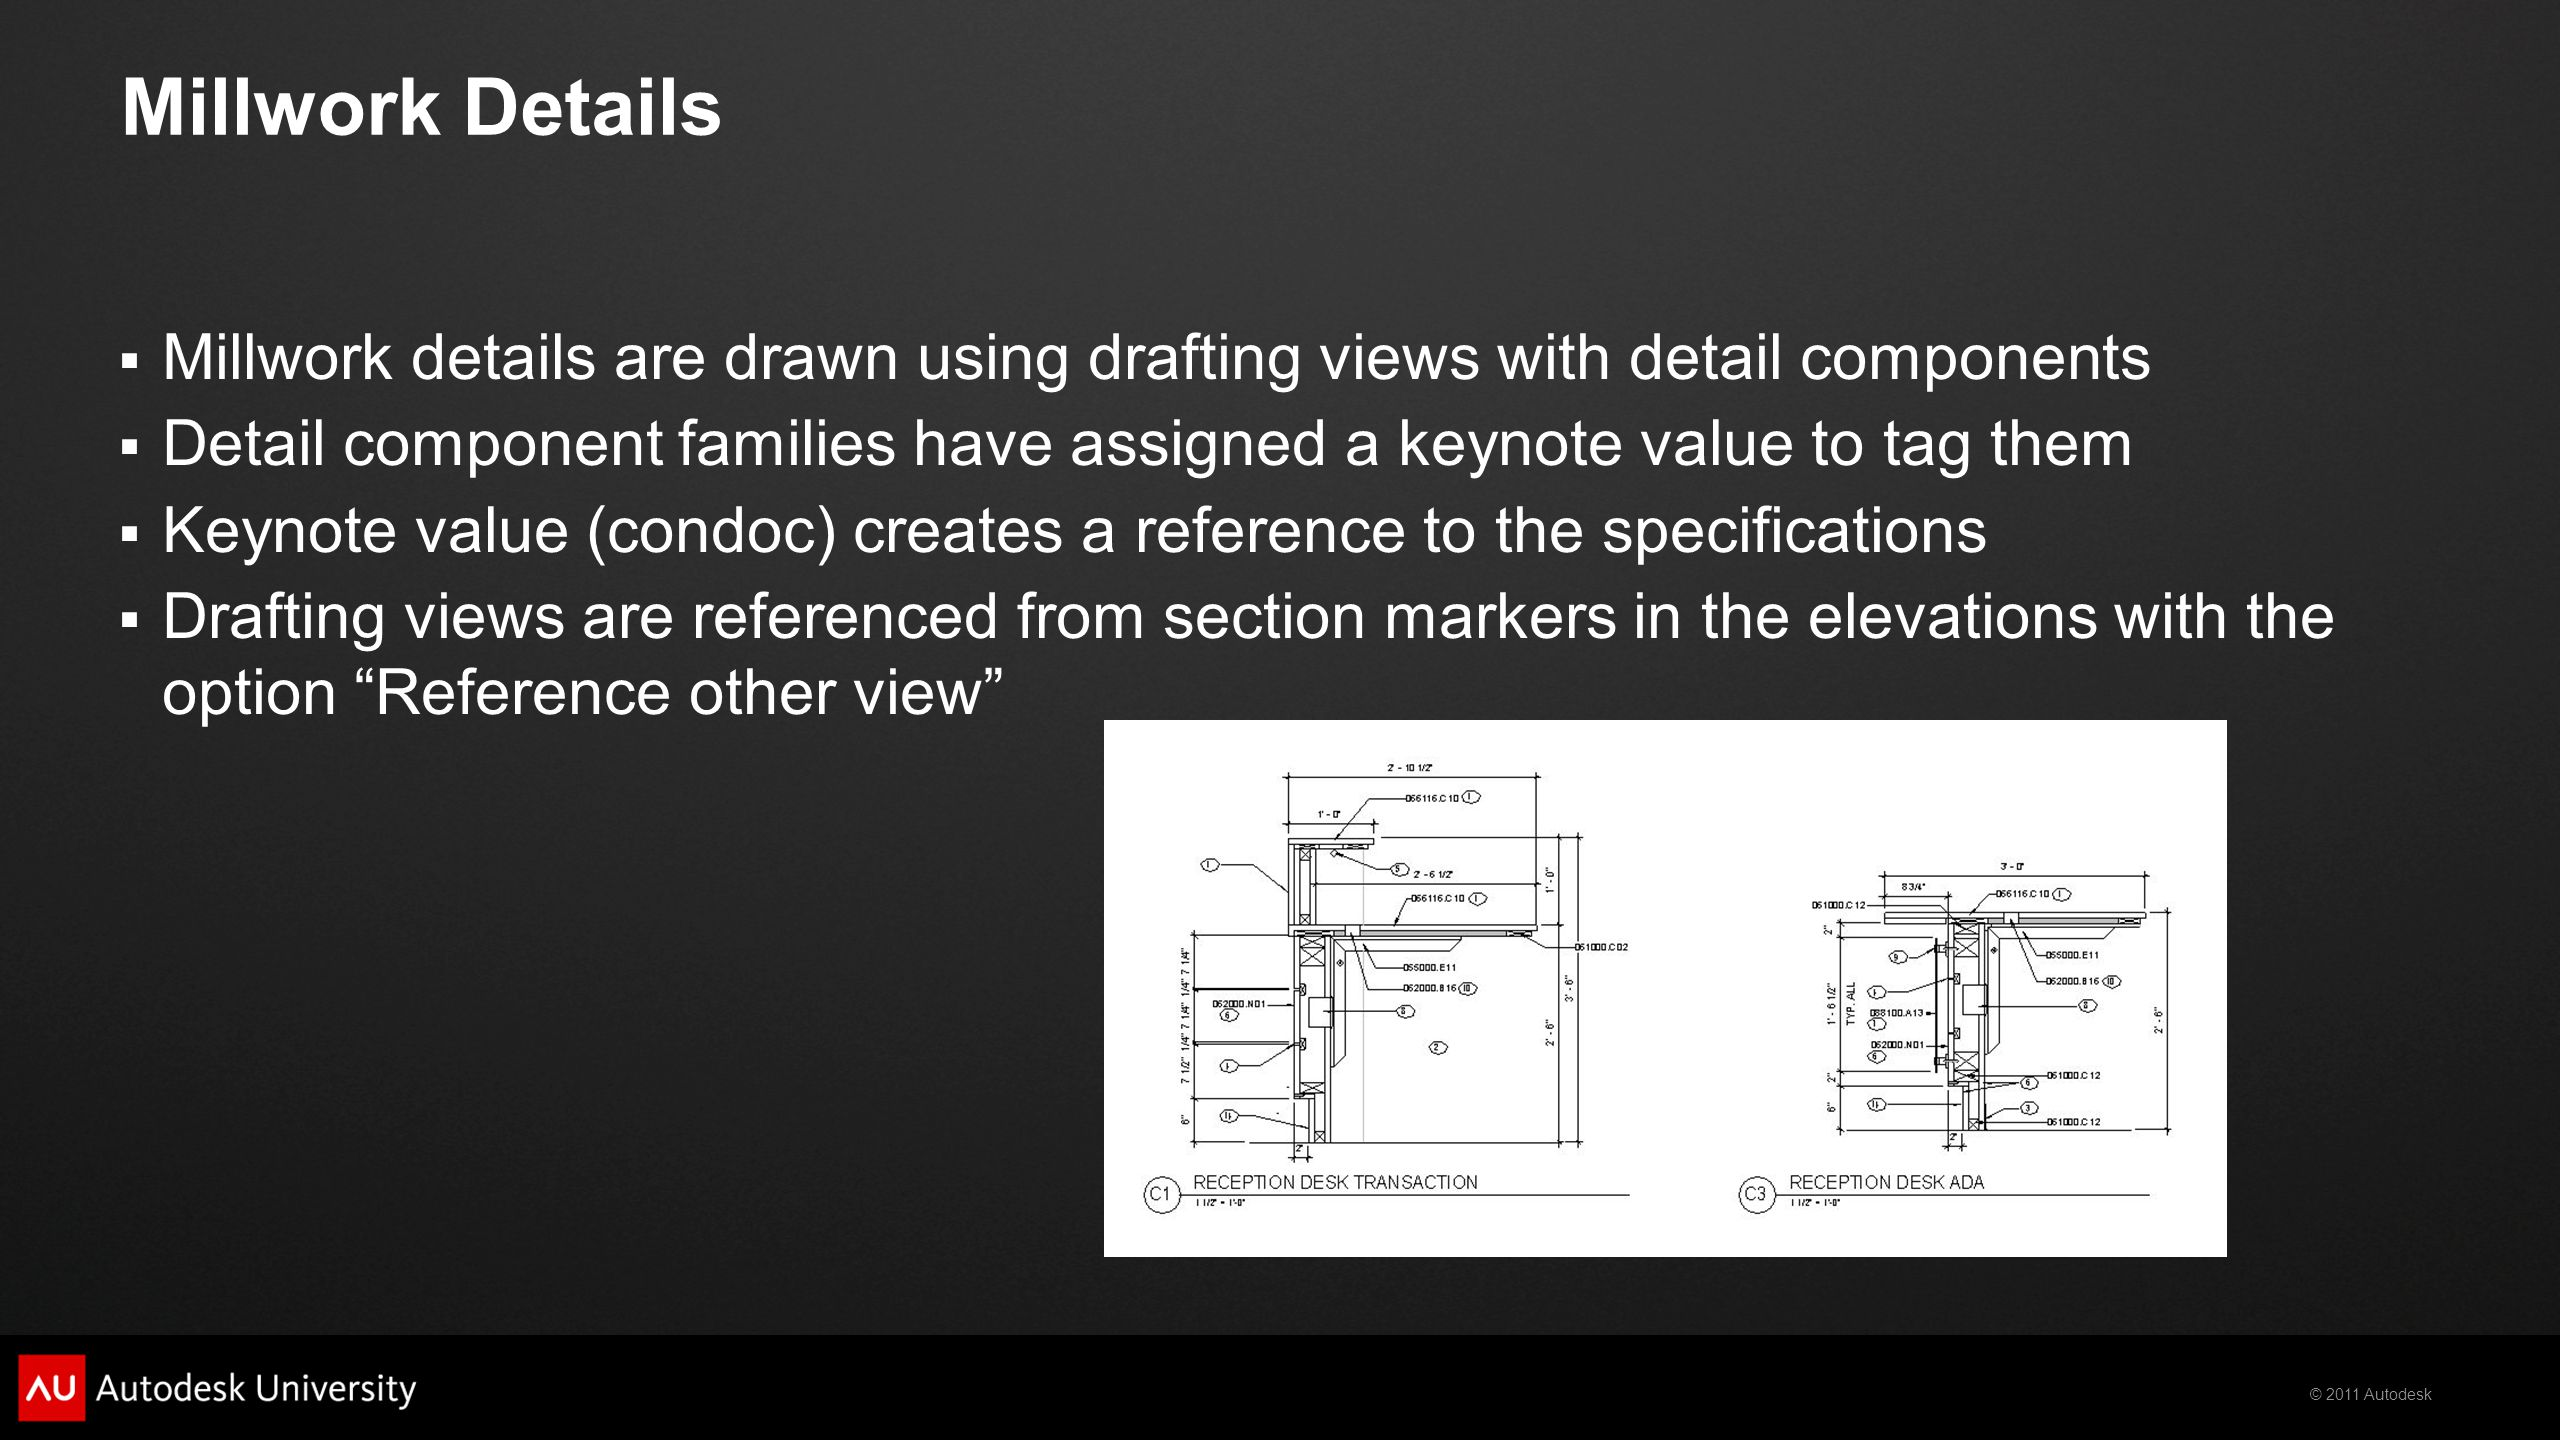 Millwork Details Millwork details are drawn using drafting views with detail components.